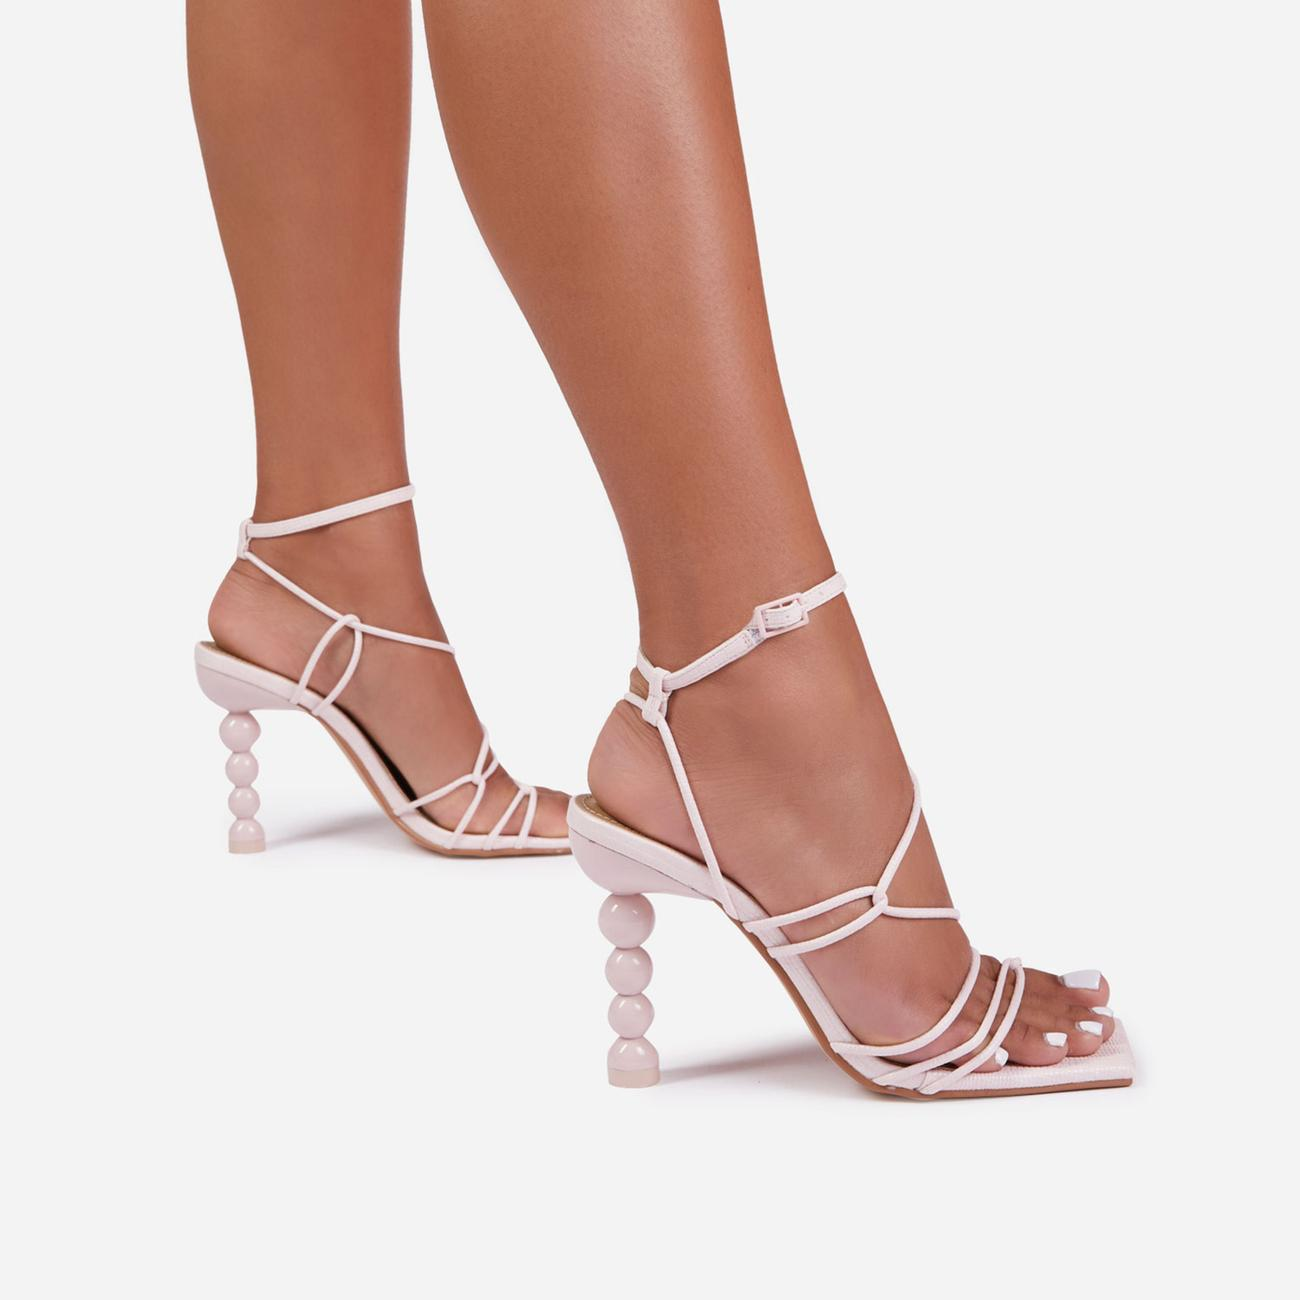 Mulberry Strappy Square Toe Sculptured Heel In Pink Faux Leather Image 2